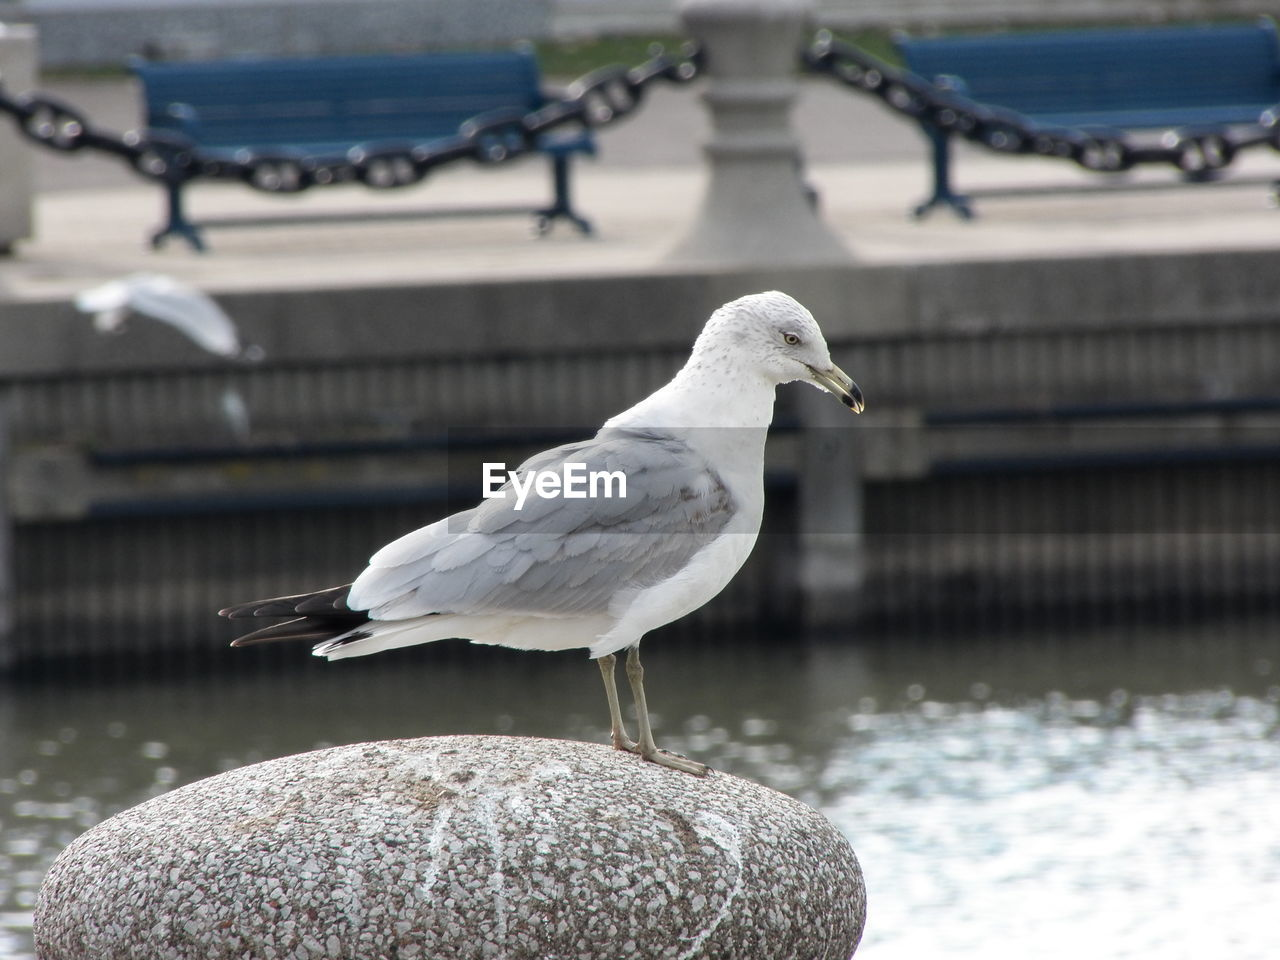 bird, animals in the wild, animal themes, animal, vertebrate, animal wildlife, focus on foreground, water, one animal, no people, perching, seagull, day, nature, close-up, lake, outdoors, sea bird, solid